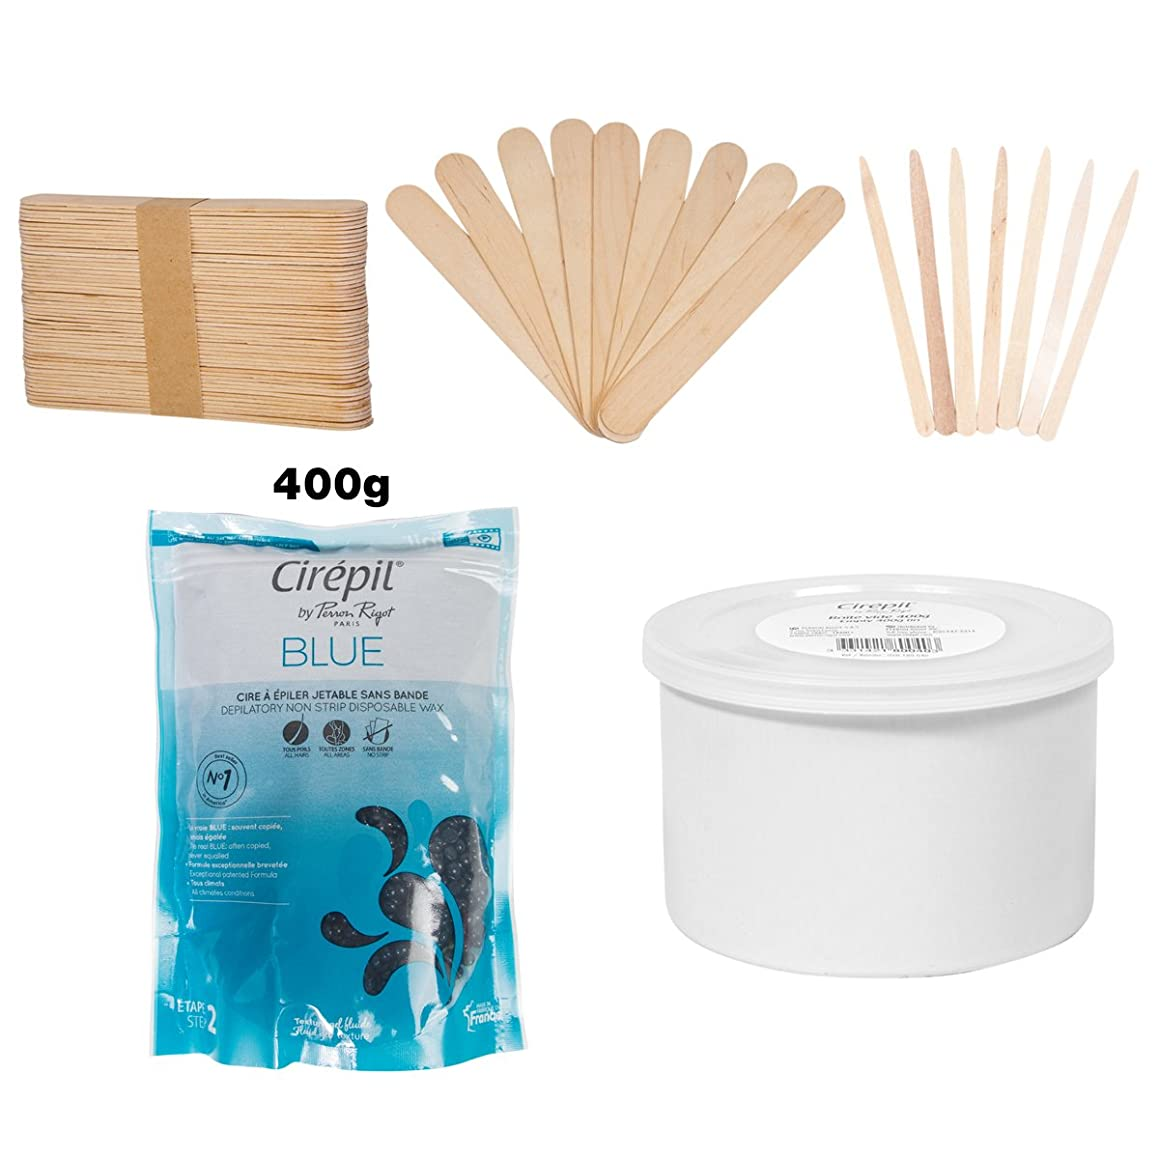 Cirepil Blue Bead (400g) Kit, Includes Empty Wax Can, 100 X-Small, and 60 Large Applicator Sticks